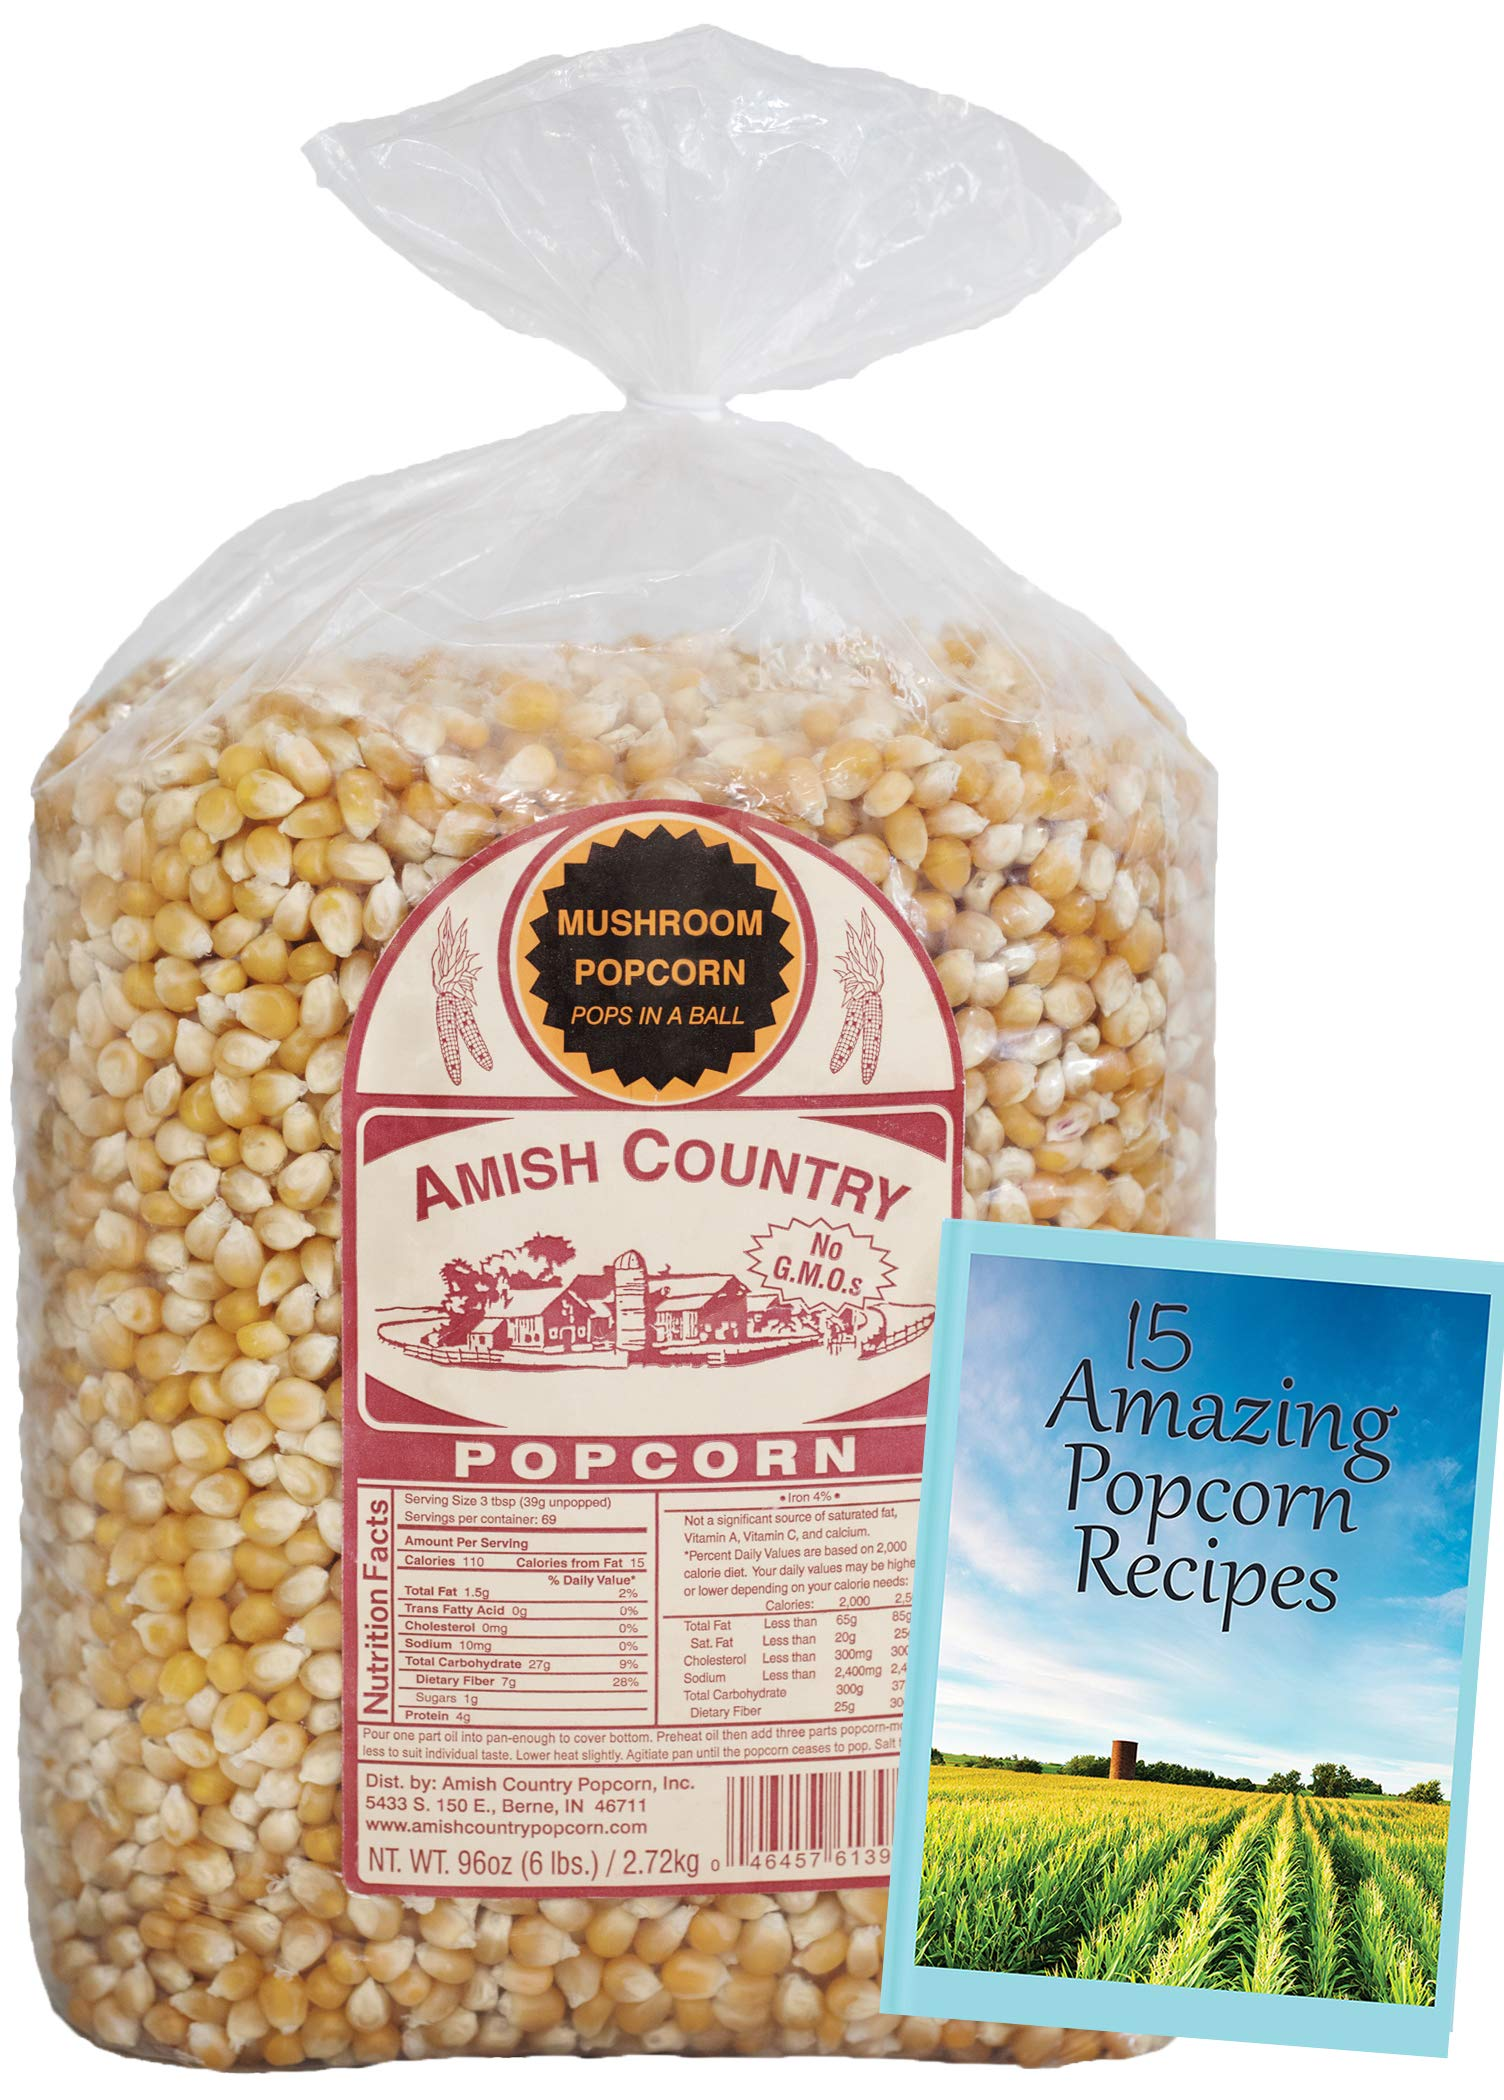 Amish Country Popcorn - Mushroom Popcorn (6 Pound Bag) - Old Fashioned, Non GMO, Gluten Free, Microwaveable, Stovetop and Air Popper Friendly - with Recipe Guide by Amish Country Popcorn (Image #2)